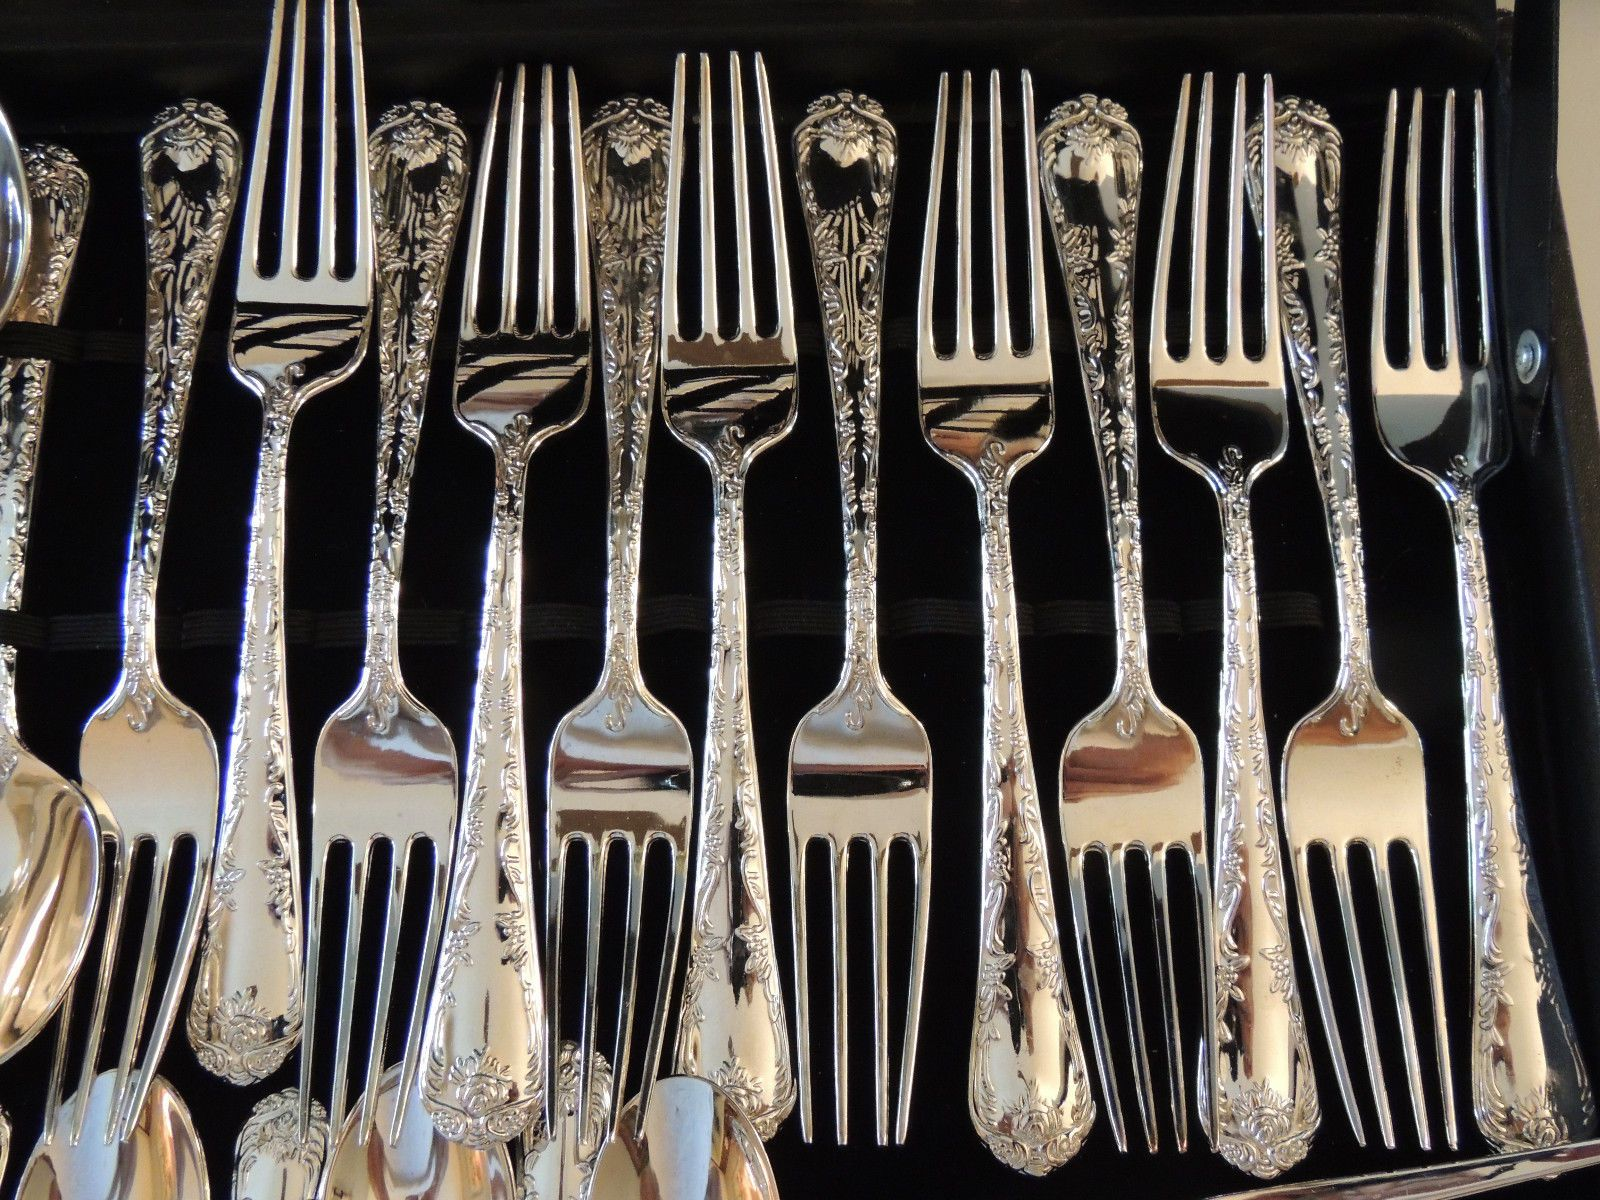 Rogers \u0026 Son China Silver Plated Flatware 50 Piece Set - Enchanted Rose & WM. Rogers \u0026 Son China Silver Plated Flatware 50 Piece Set ...